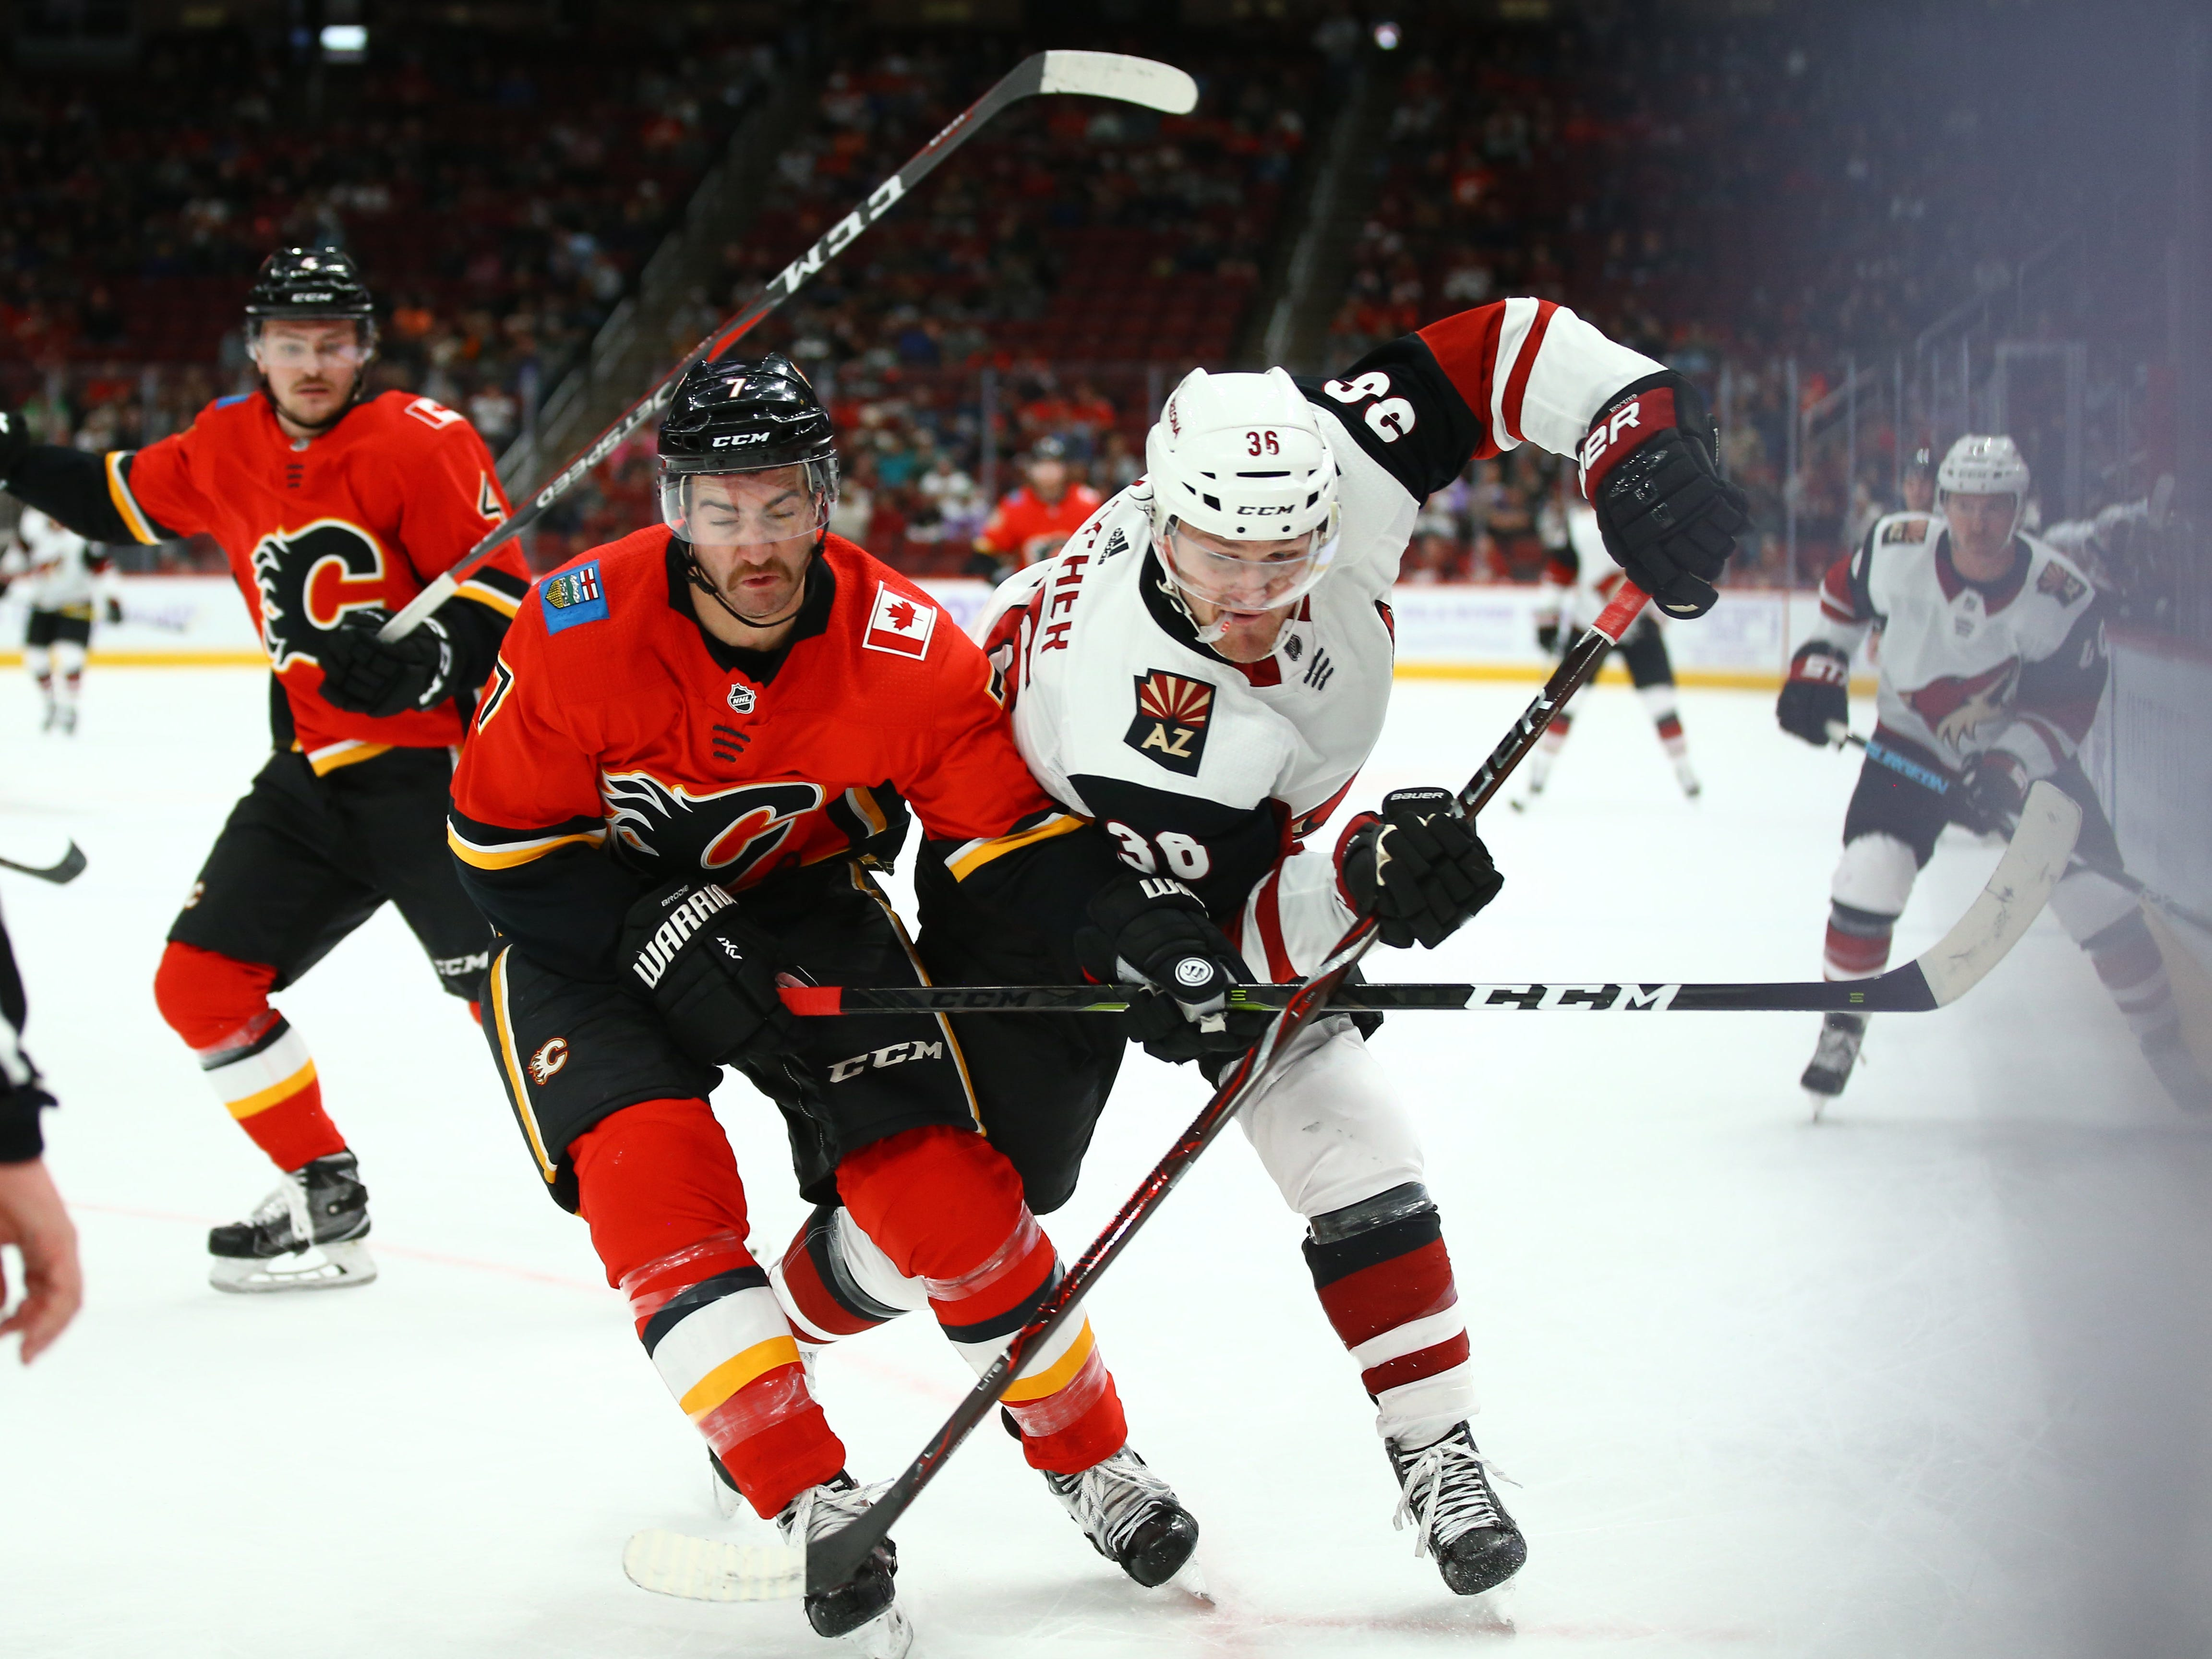 Nov 25, 2018; Glendale, AZ, USA; Arizona Coyotes right wing Christian Fischer (36) battles for position against Calgary Flames defenseman T.J. Brodie (7) in the first period at Gila River Arena. Mandatory Credit: Mark J. Rebilas-USA TODAY Sports